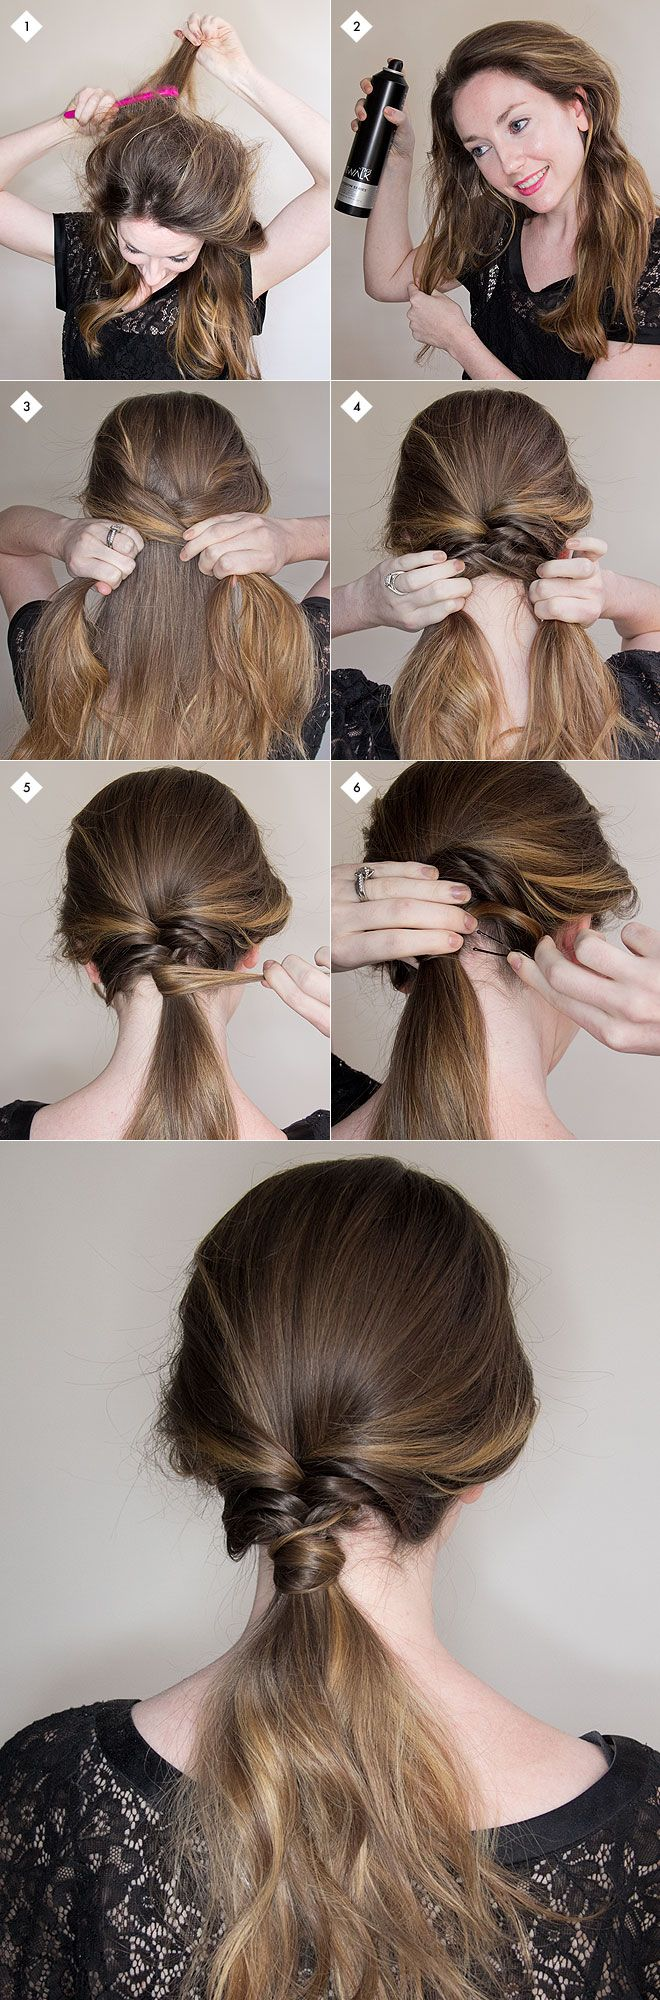 Chic simple hairstyles anyone can do simple hairstyles easy